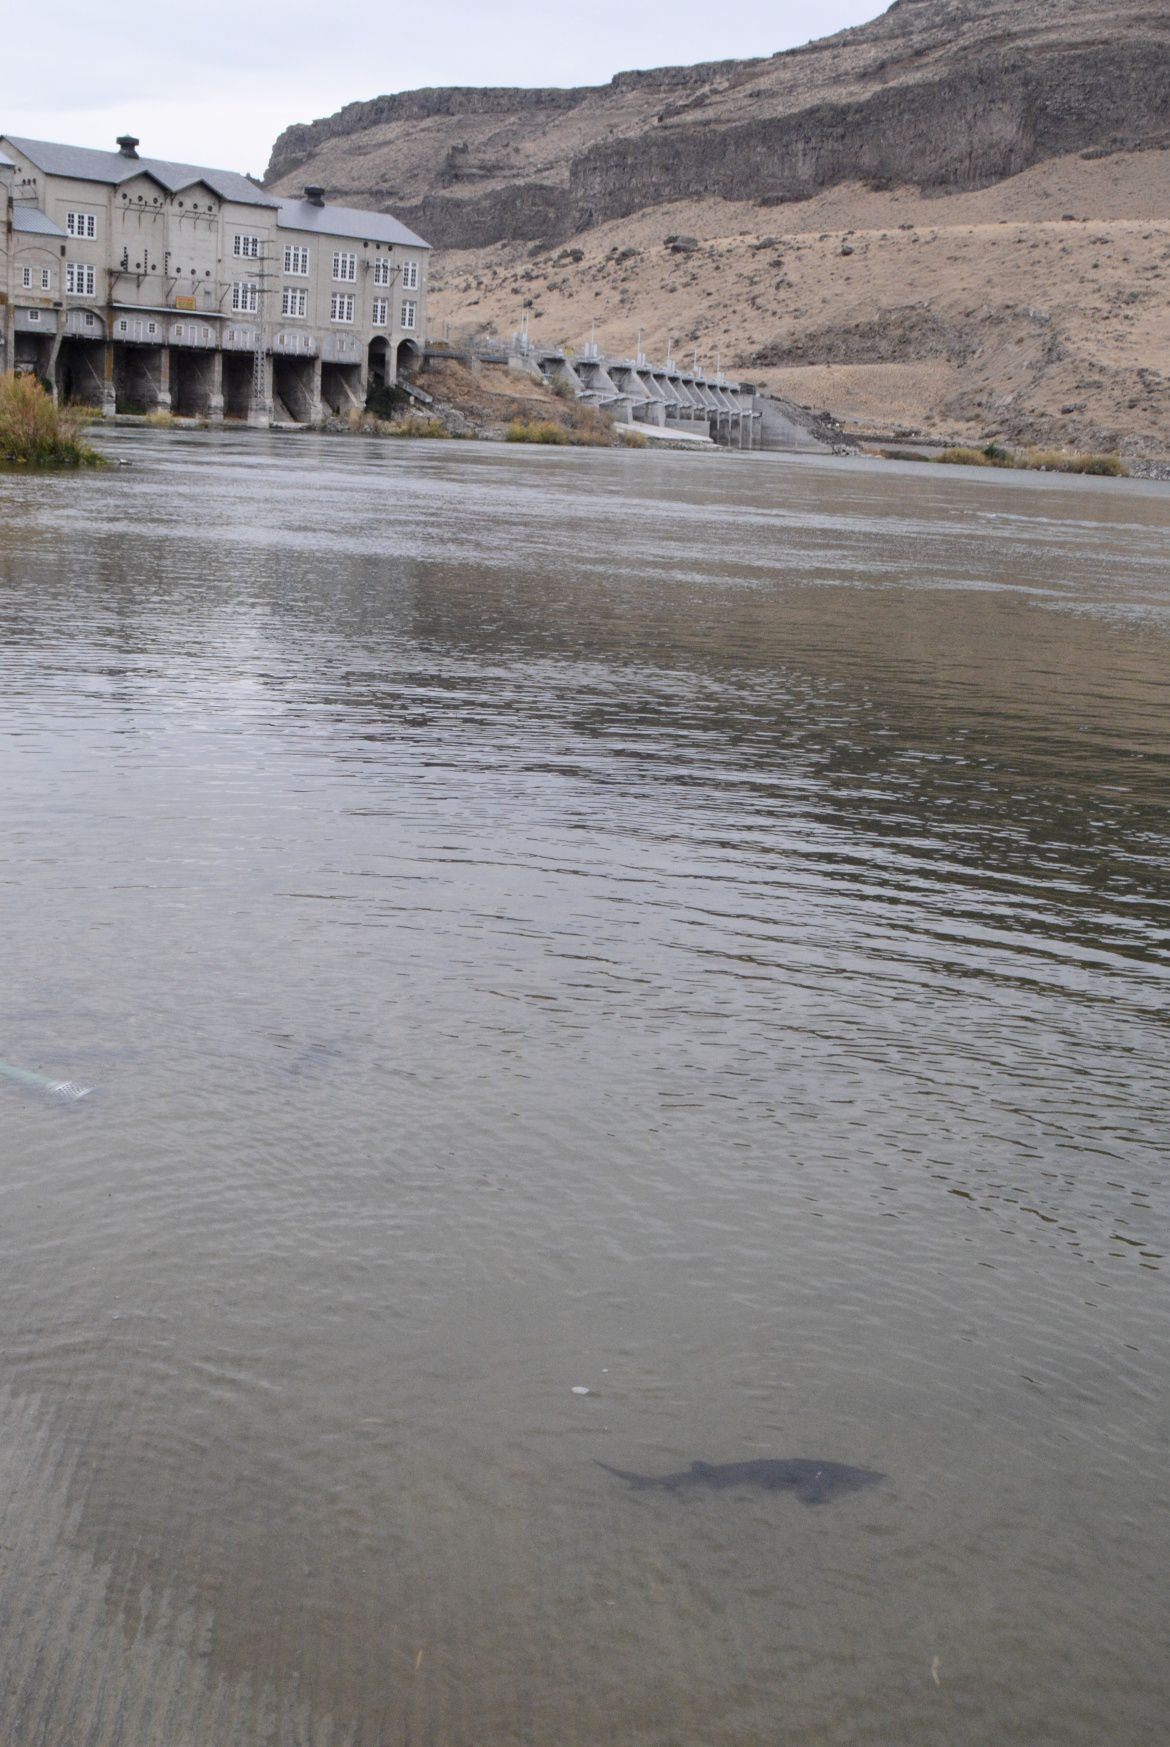 Phillips fish and game stocks sturgeon now the wait for Idaho department of fish and game